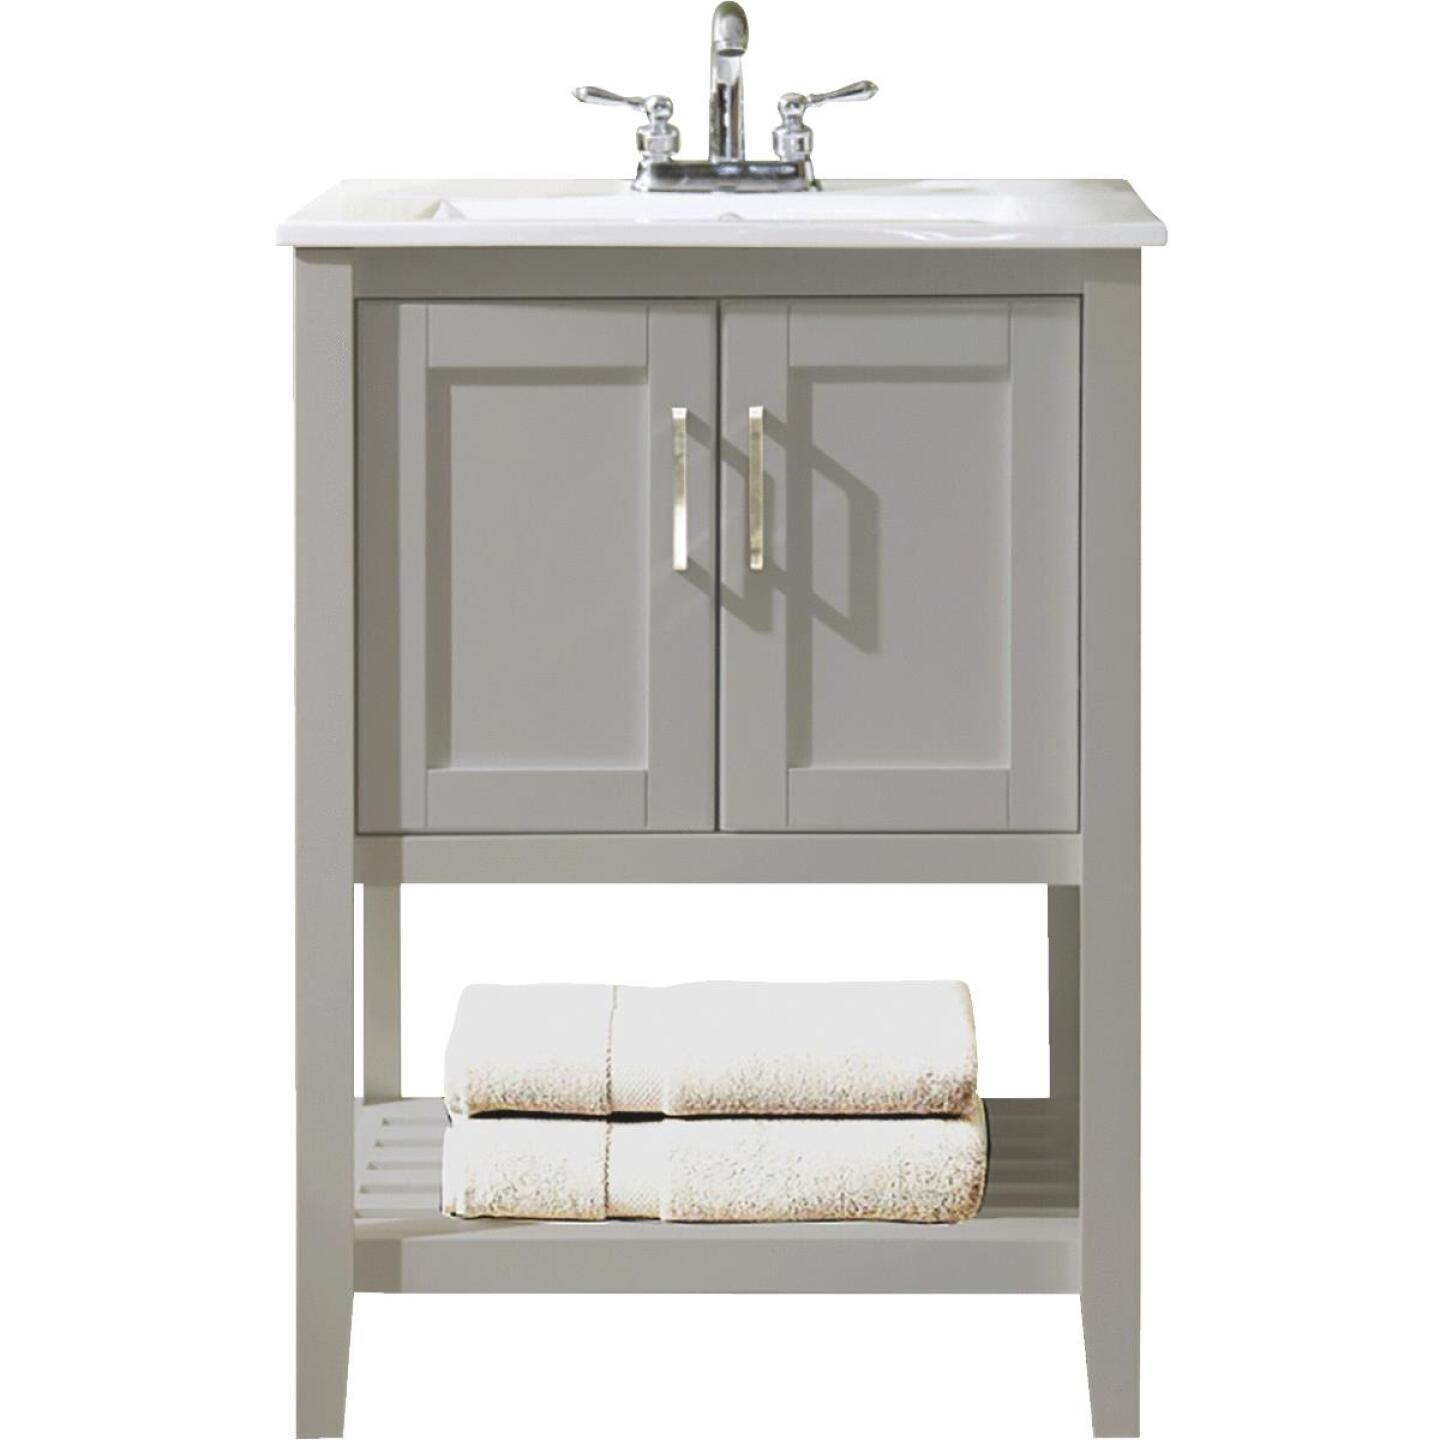 Design House Valerie Dove Gray 24 In. W x 34 In. H x 18 In. D Vanity with Porcelain Top Image 1